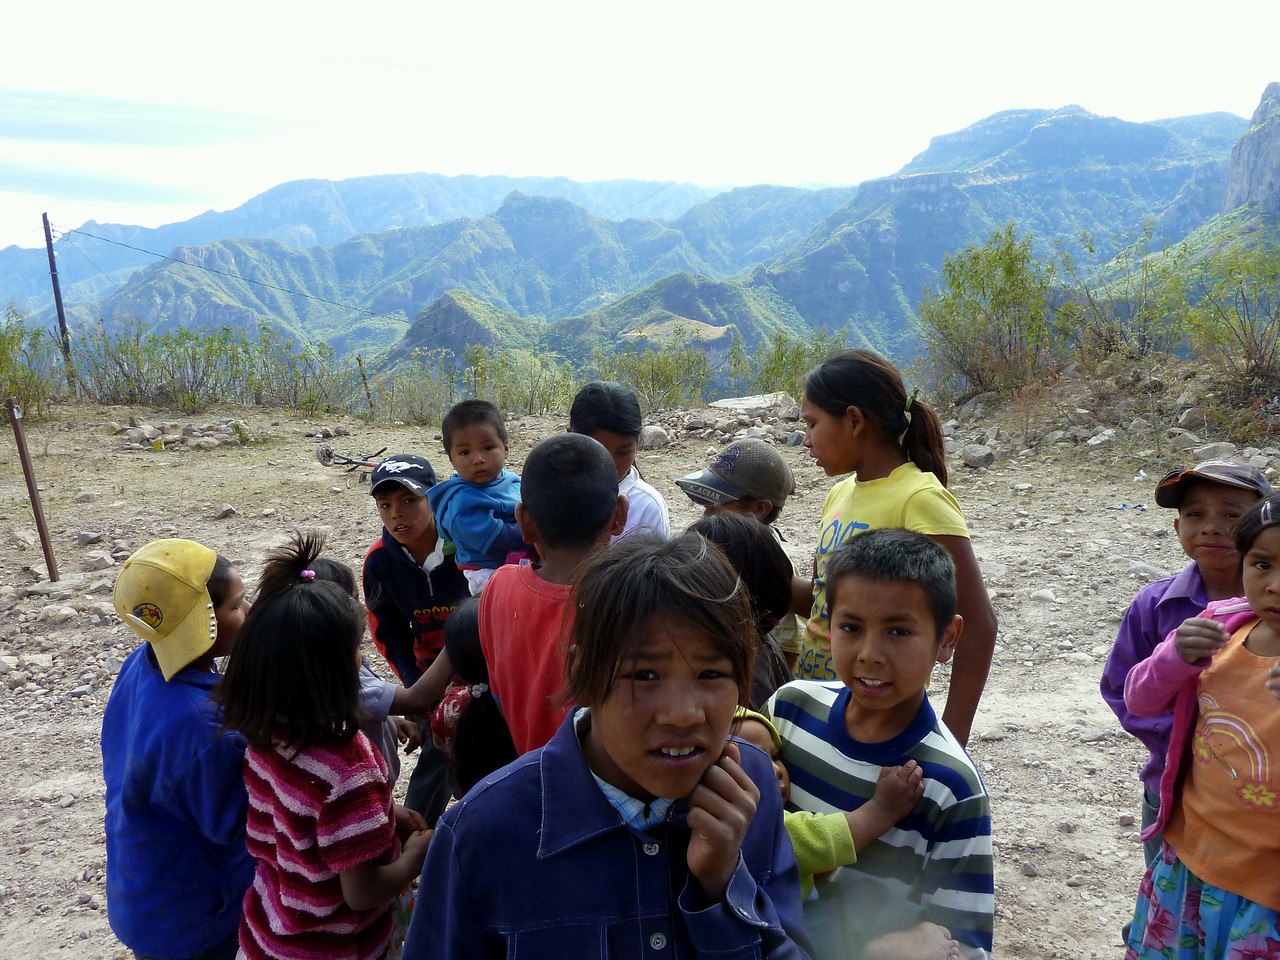 Kids on the Urique switchbacks. They are much more interested in the gum than the camera.